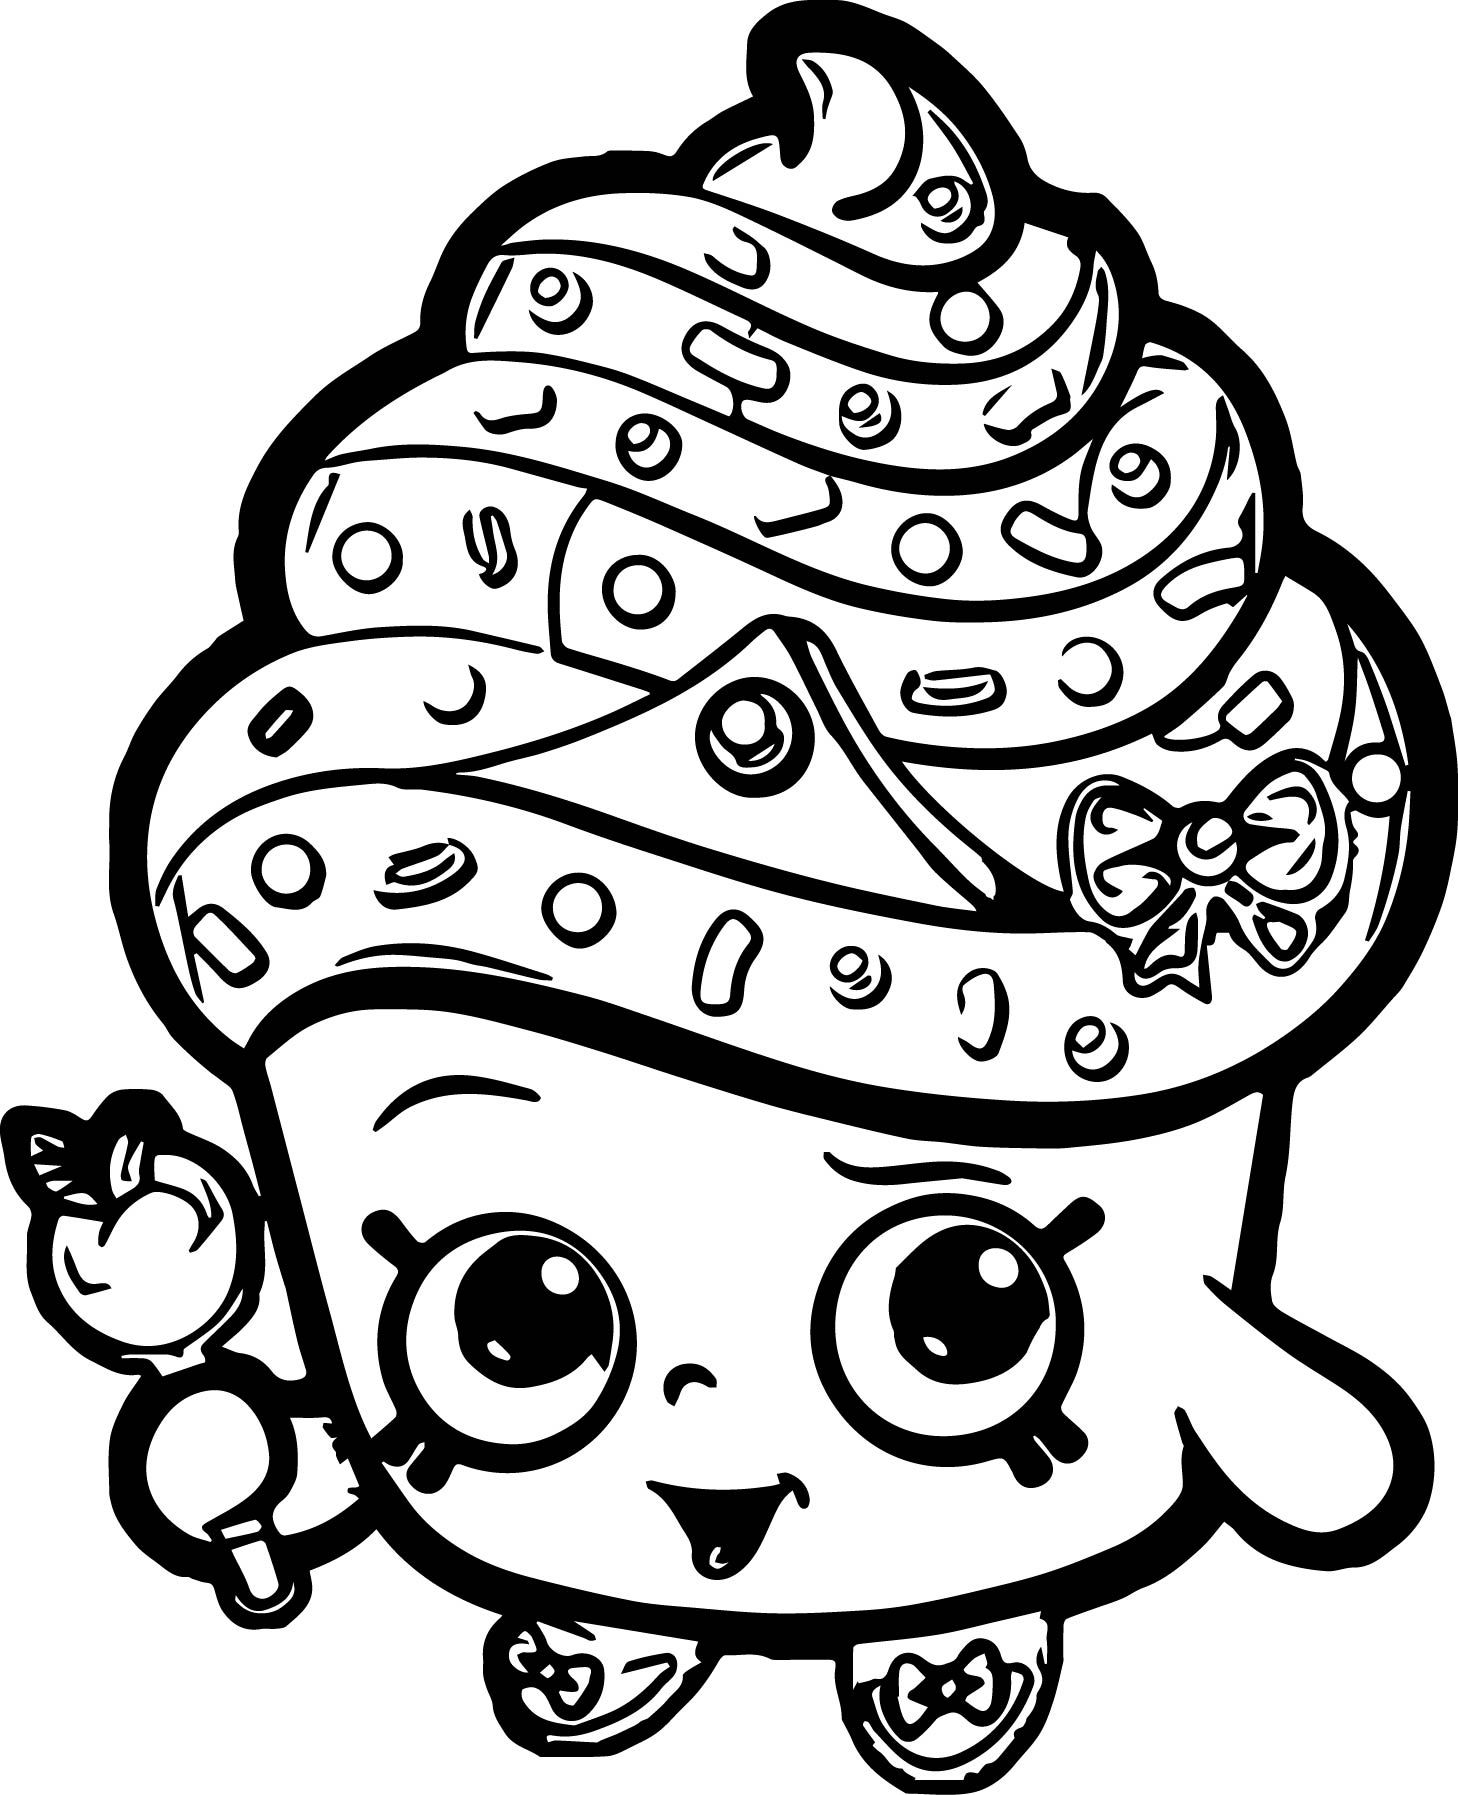 Cool Cupcake Queen Shopkins Coloring Page Shopkins Coloring Pages Free Printable Shopkin Coloring Pages Shopkins Colouring Book